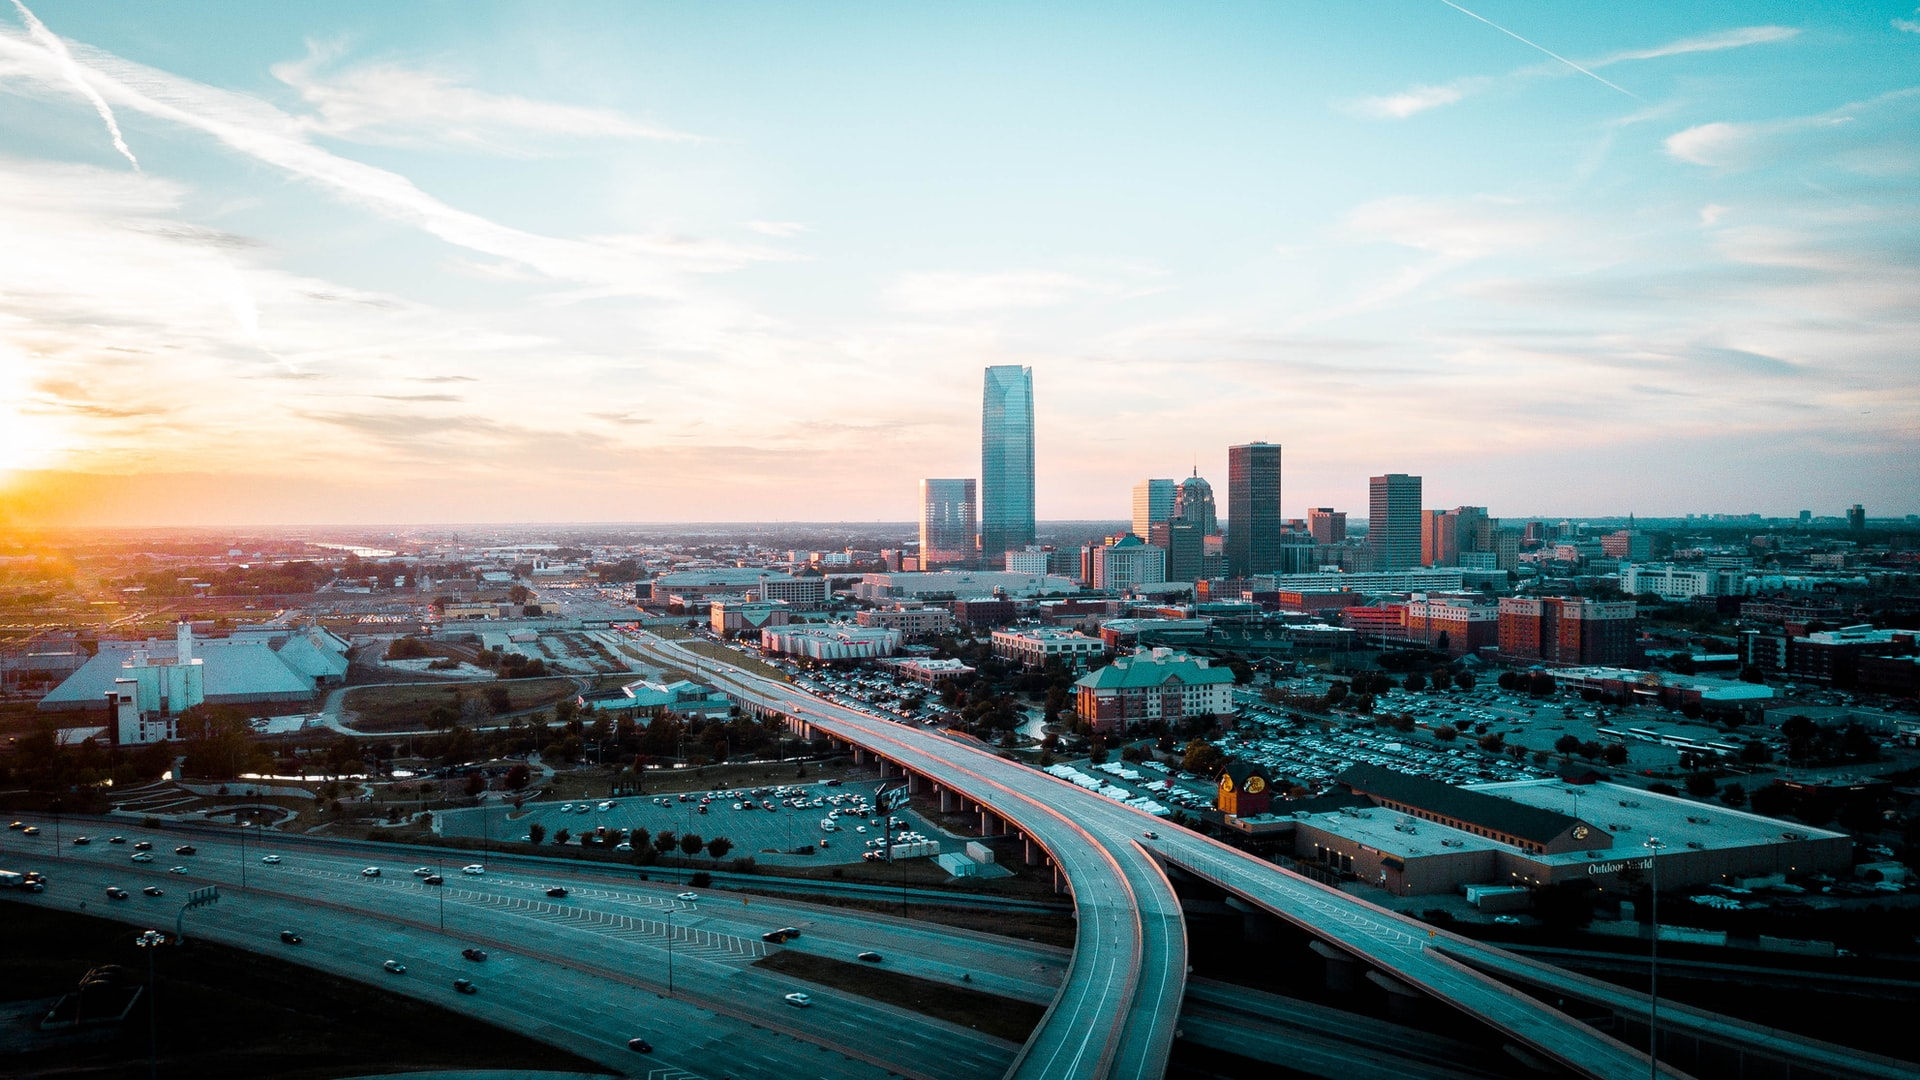 Should You Move to Oklahoma from California?